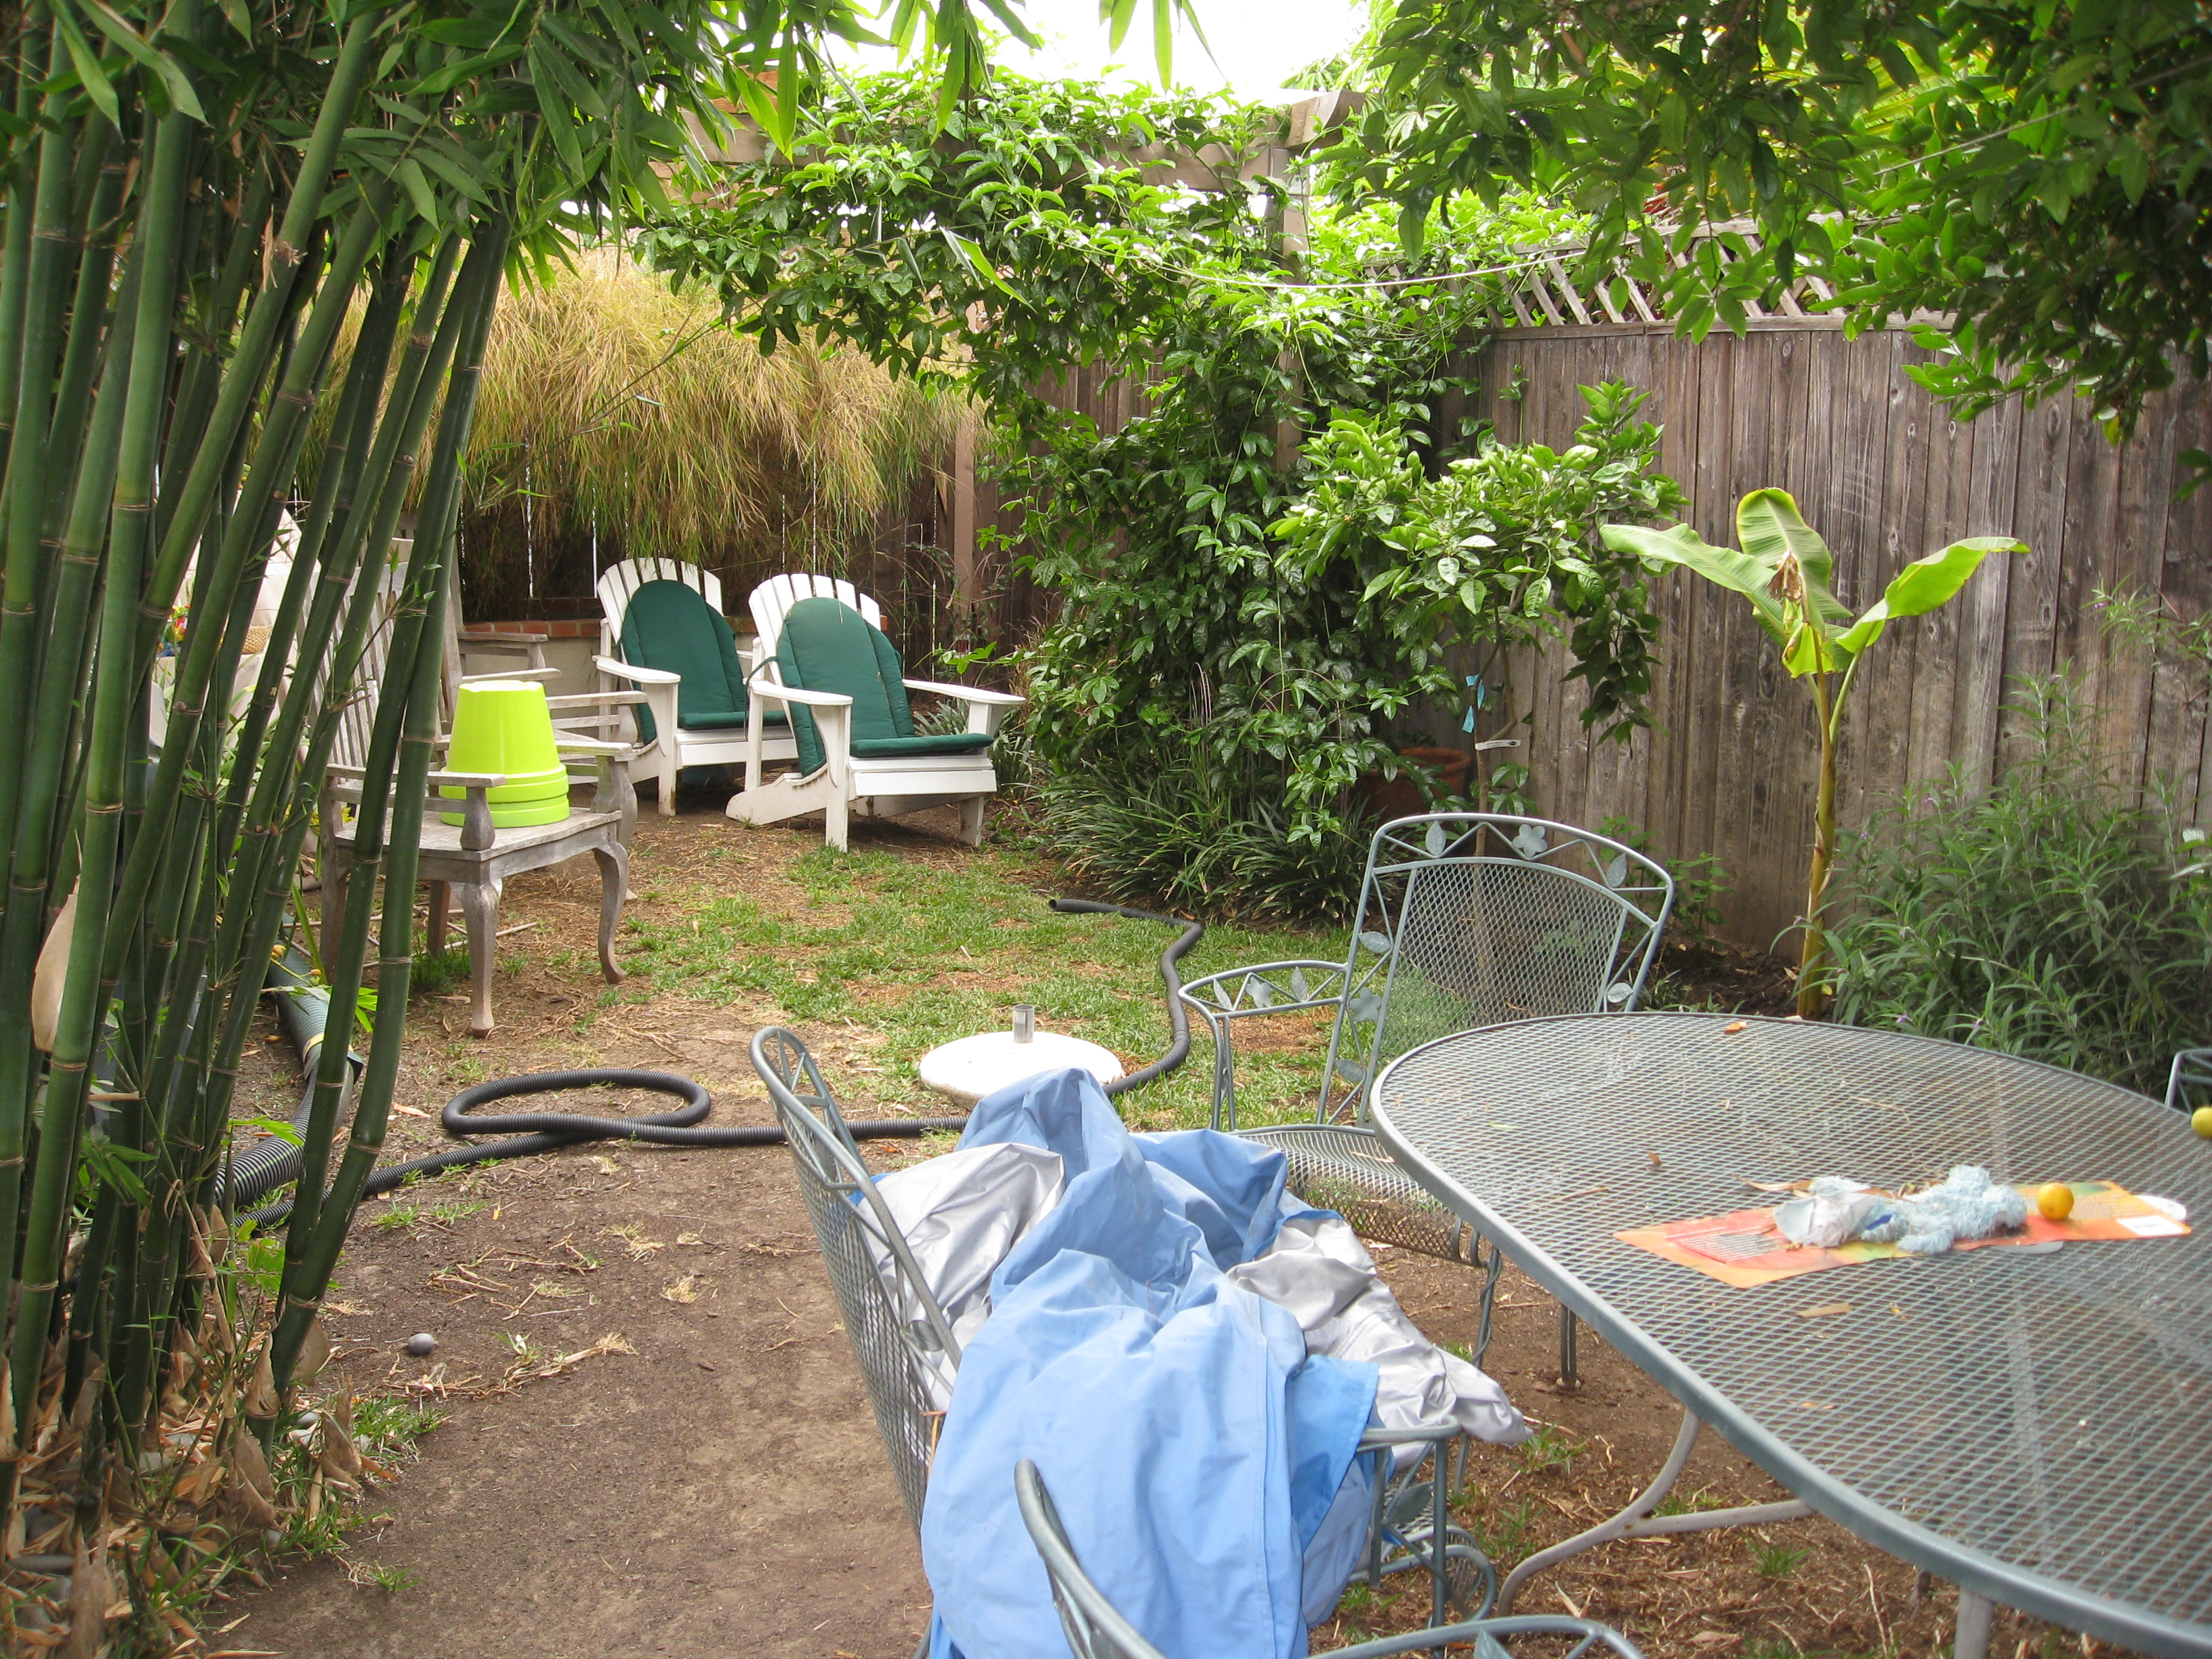 Passionfruit and citrus trees needed taming, and extra furniture needed a home.